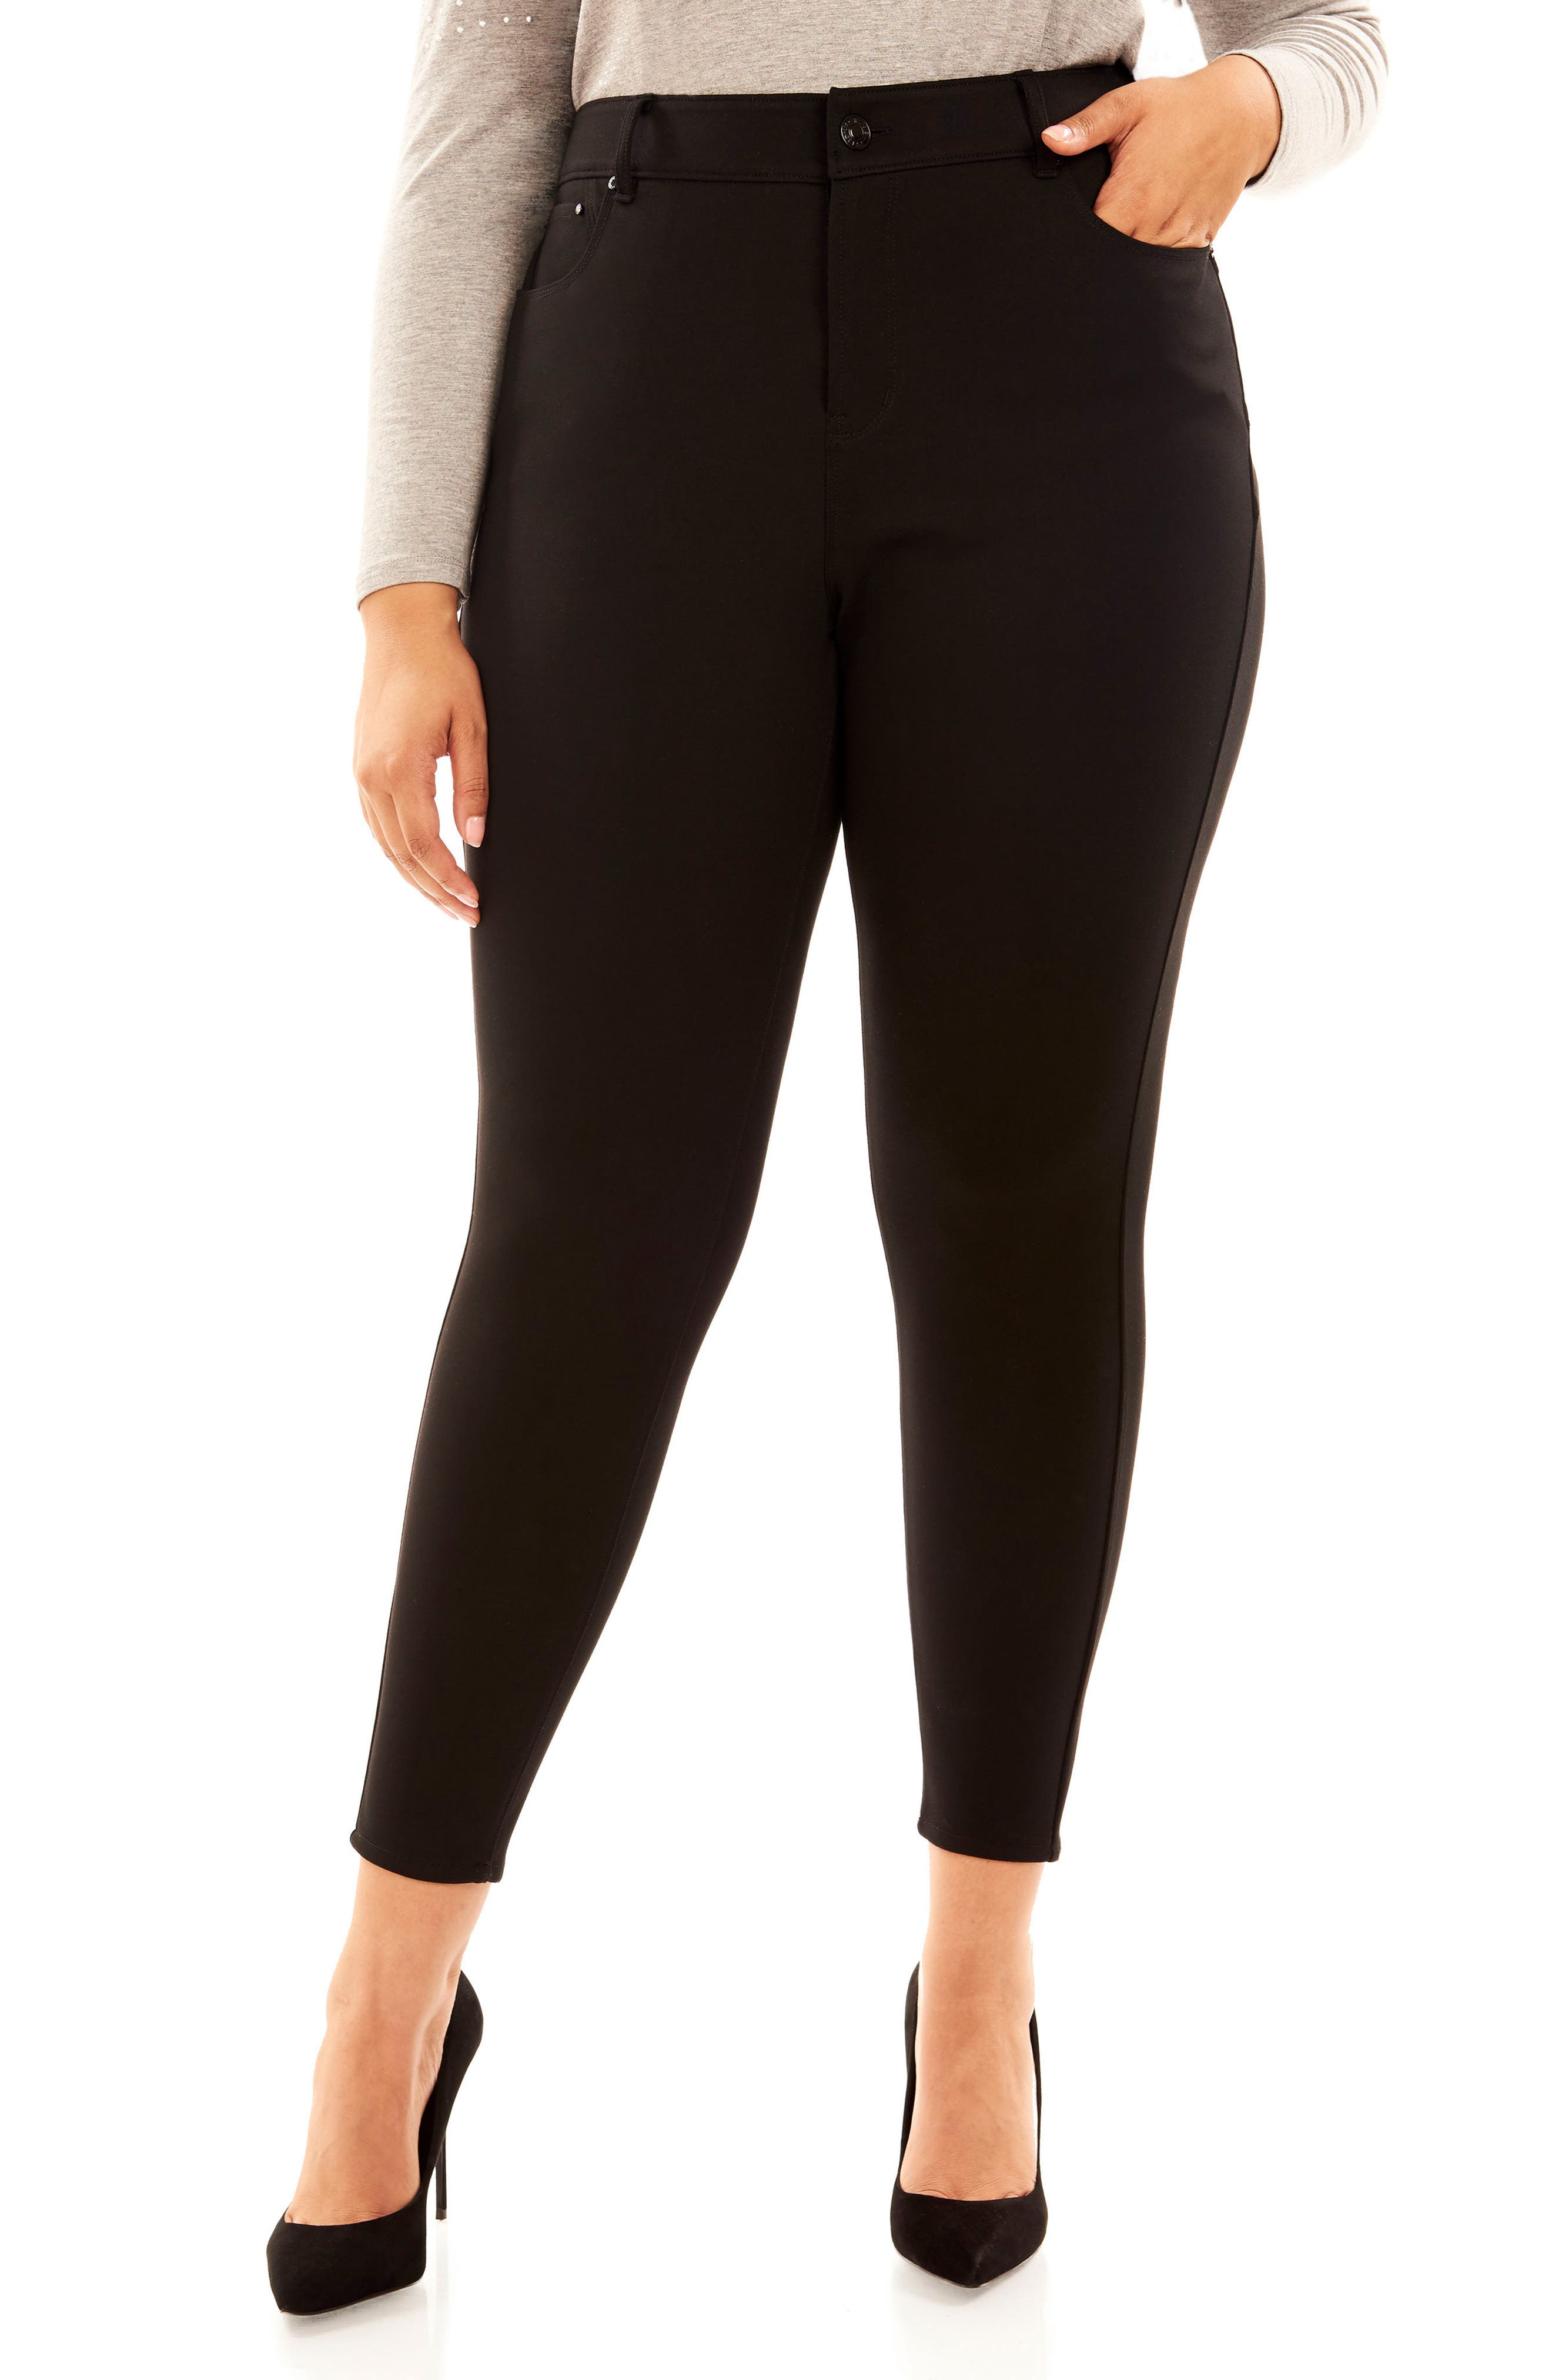 REBEL WILSON X ANGELS The Super Bass Midrise Ankle Pants (Plus Size)